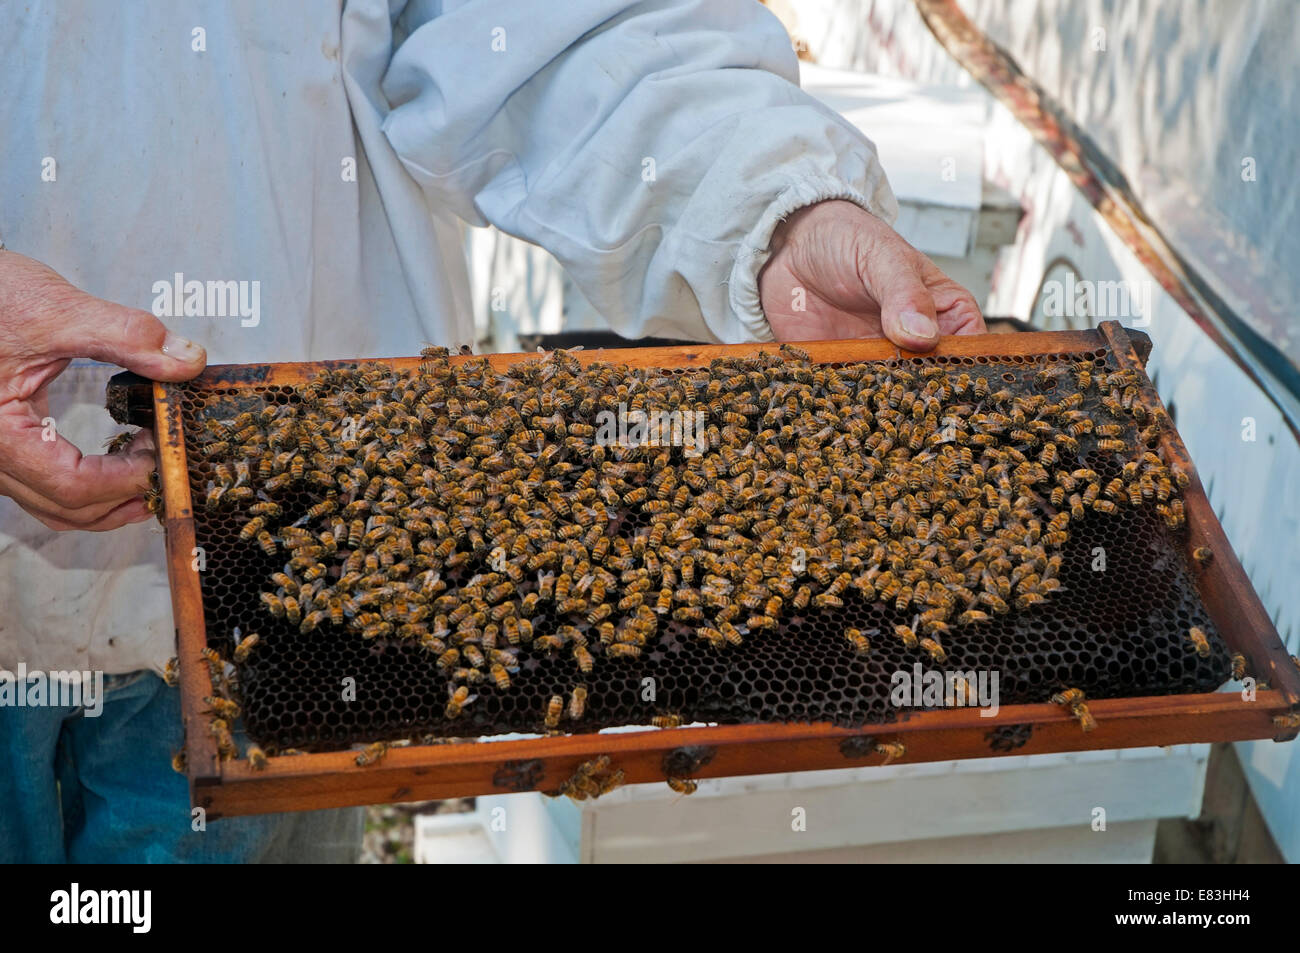 Inside a bee hive - Stock Image